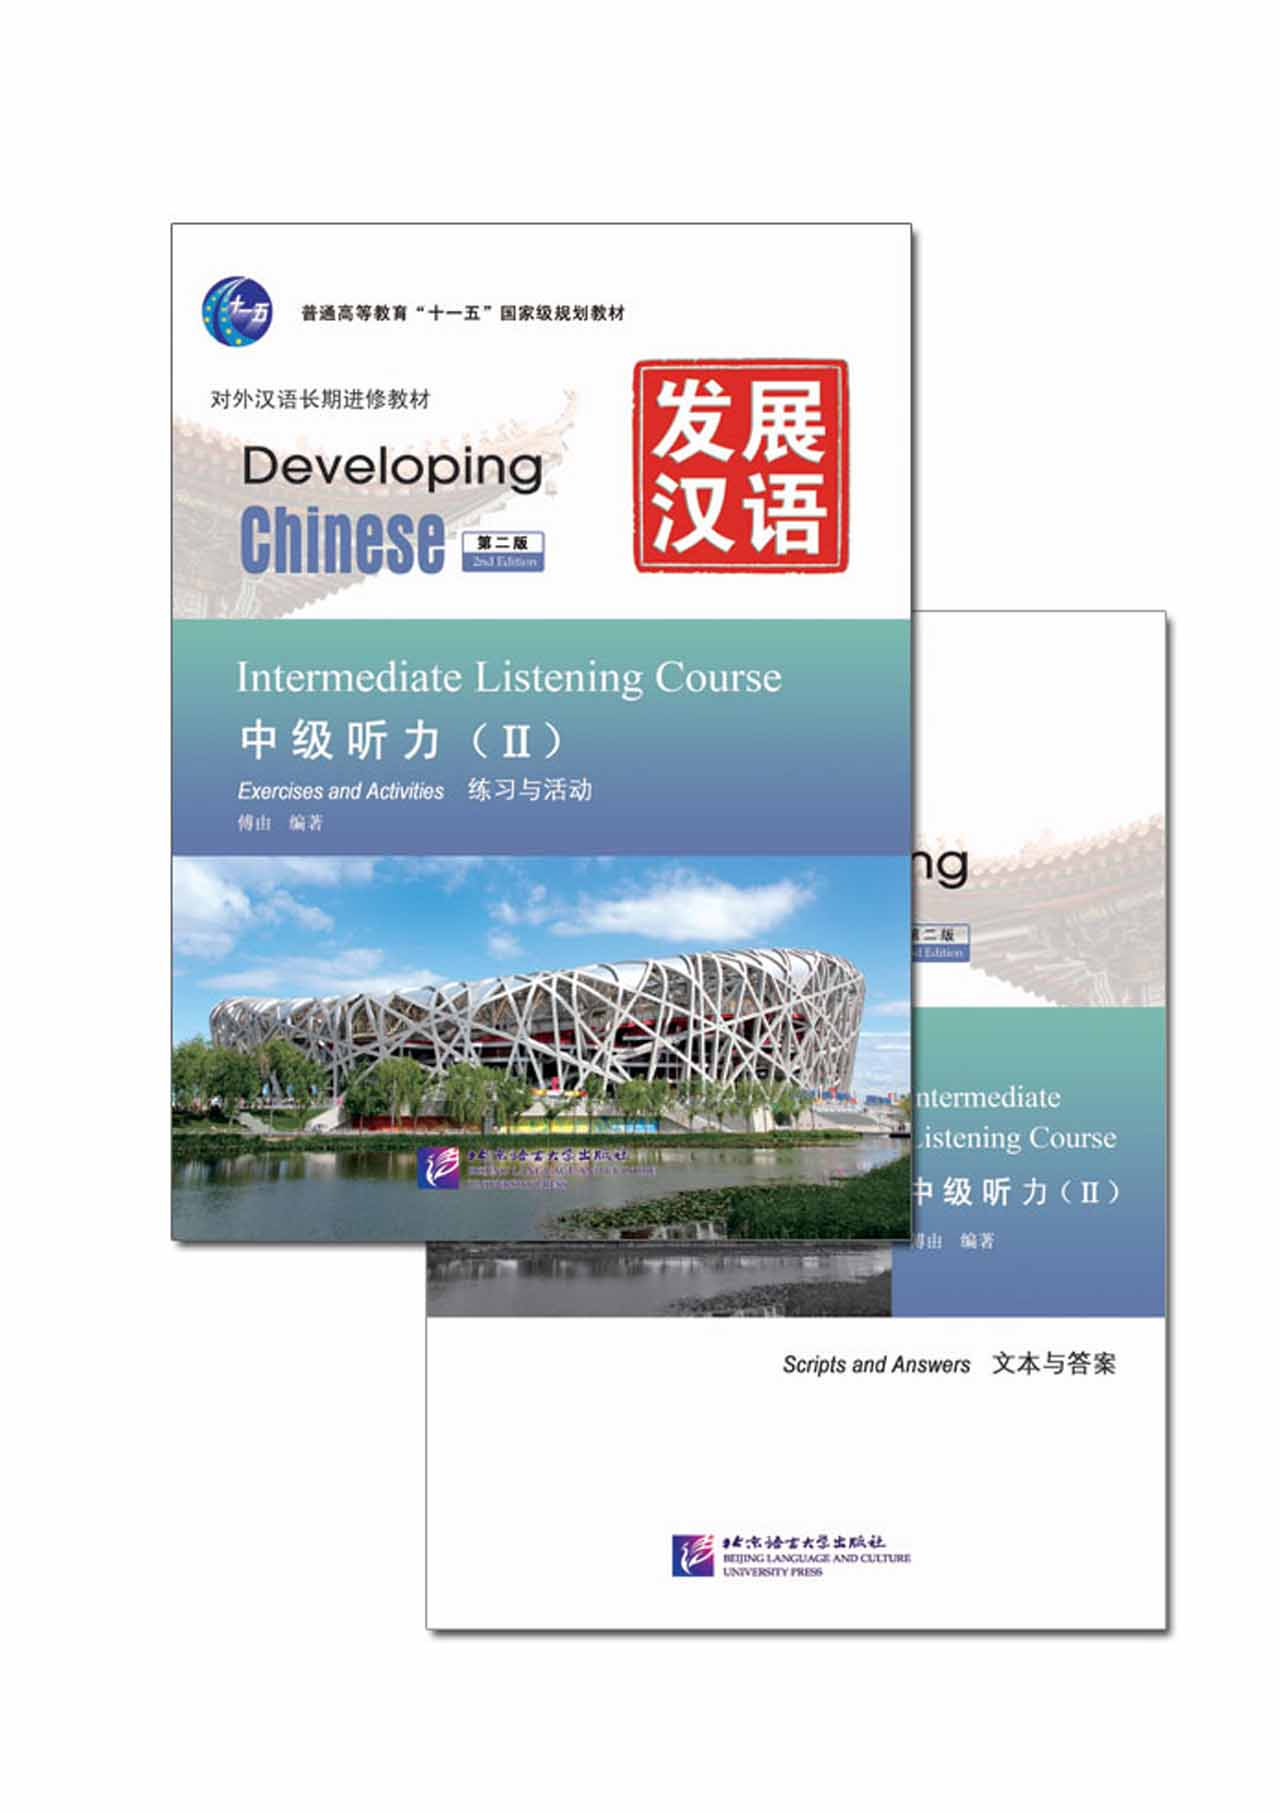 """Developing Chinese (2nd Edition) Intermediate Listening Course II (Including """"Exercises and Activities""""&""""Scripts and Answers"""")+MP3发展汉语(第2版)中级听力(Ⅱ)(练习与活动+文本与答案,含1MP3)"""